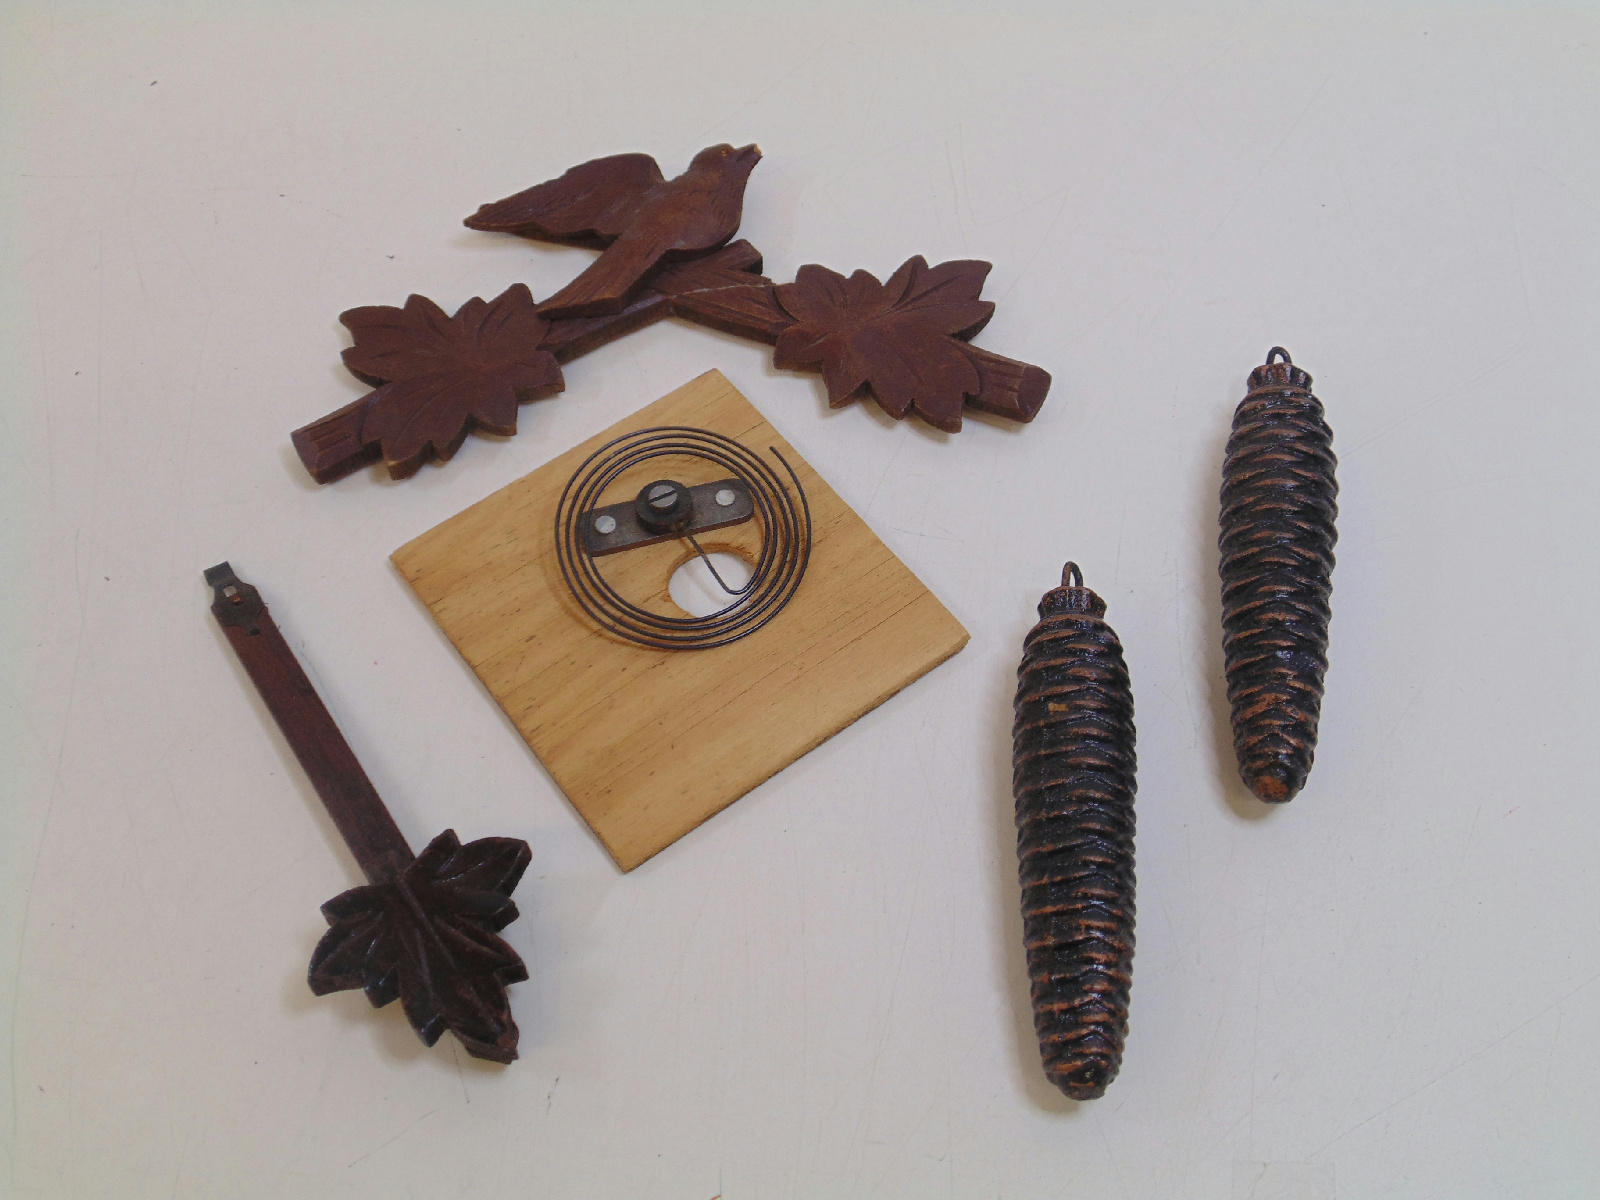 Black forest wooden cuckoo clock made in germany for parts repair ebay - Wooden cuckoo clocks ...